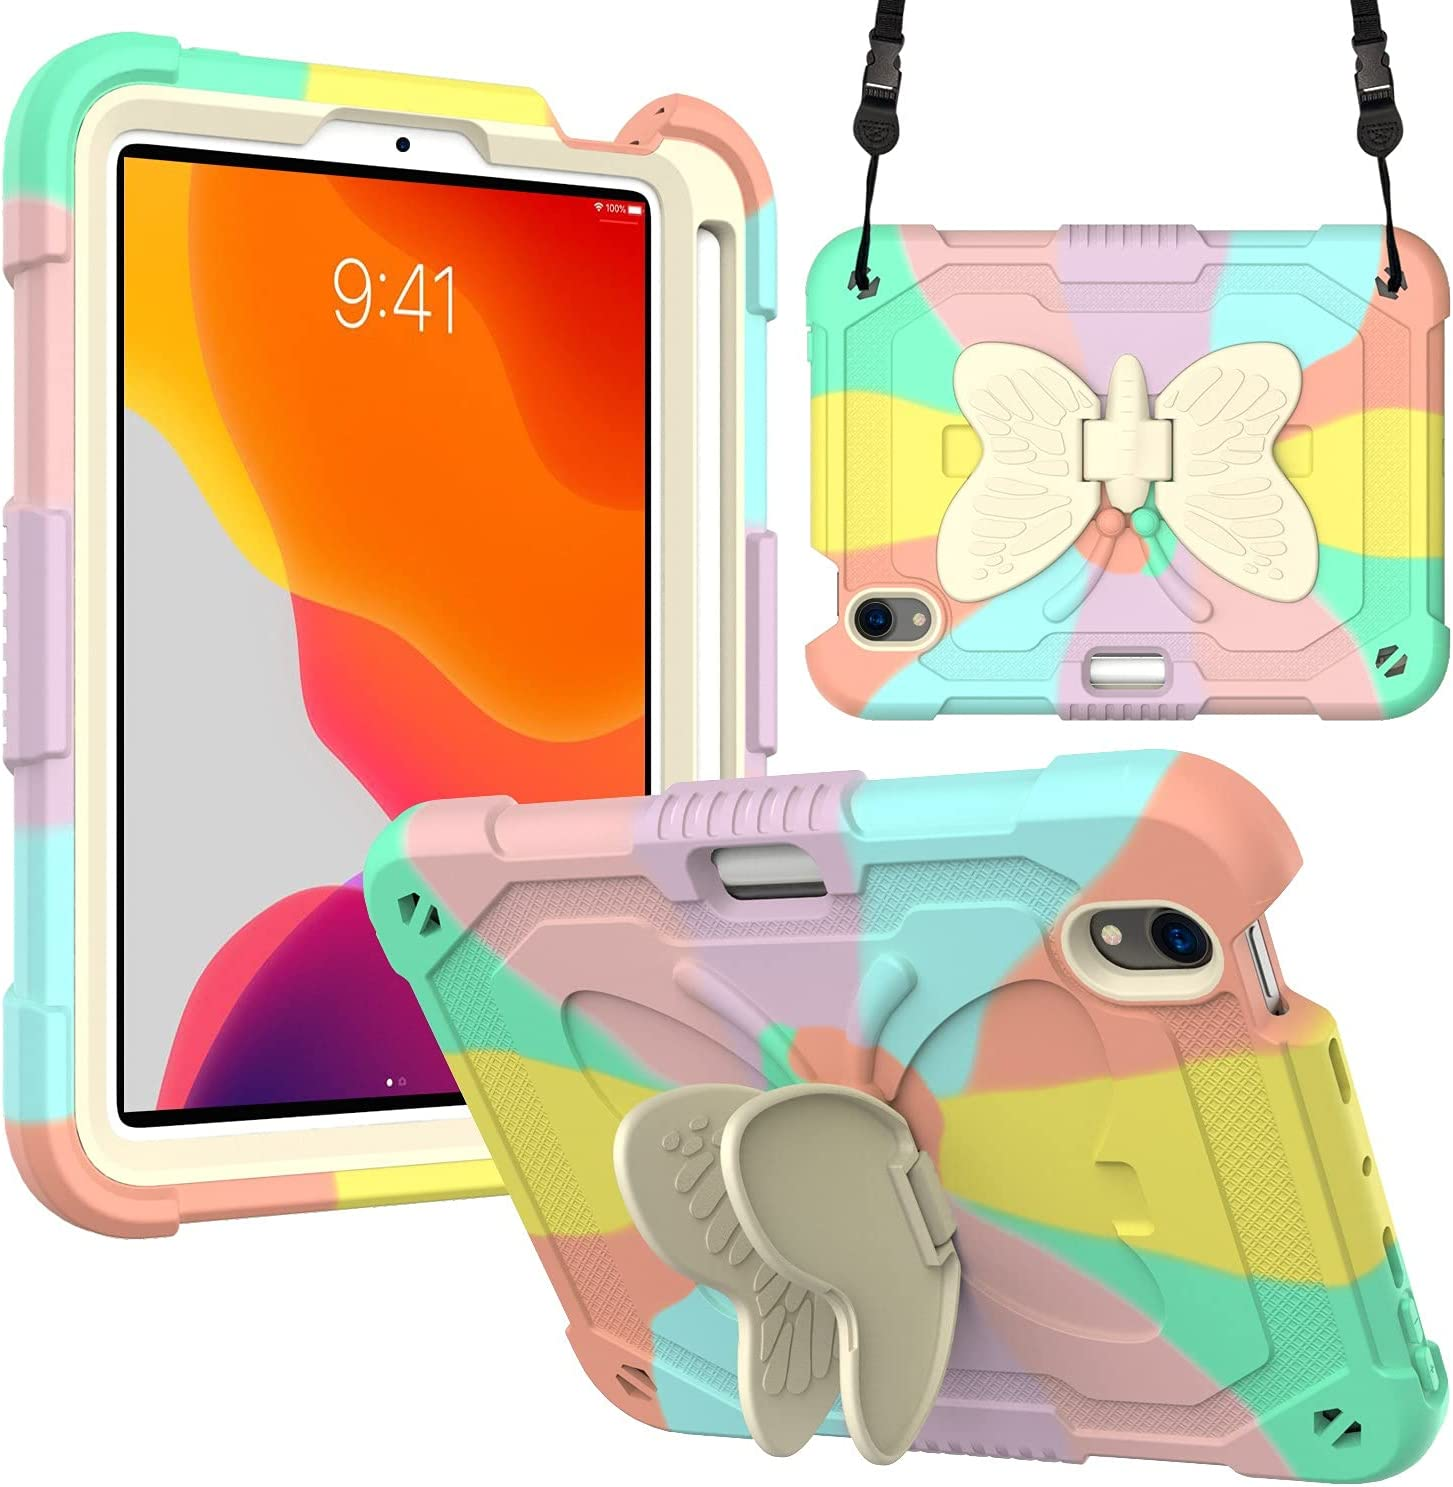 Compatible with iPad Mini 6 Case 8.3 inch 2021,iPad Mini 6th Generation Case for Kids Boy Girl Gift, Cute Butterfly Wings Kickstand Shockproof Silicone Cover for iPad Mini 6 8.3